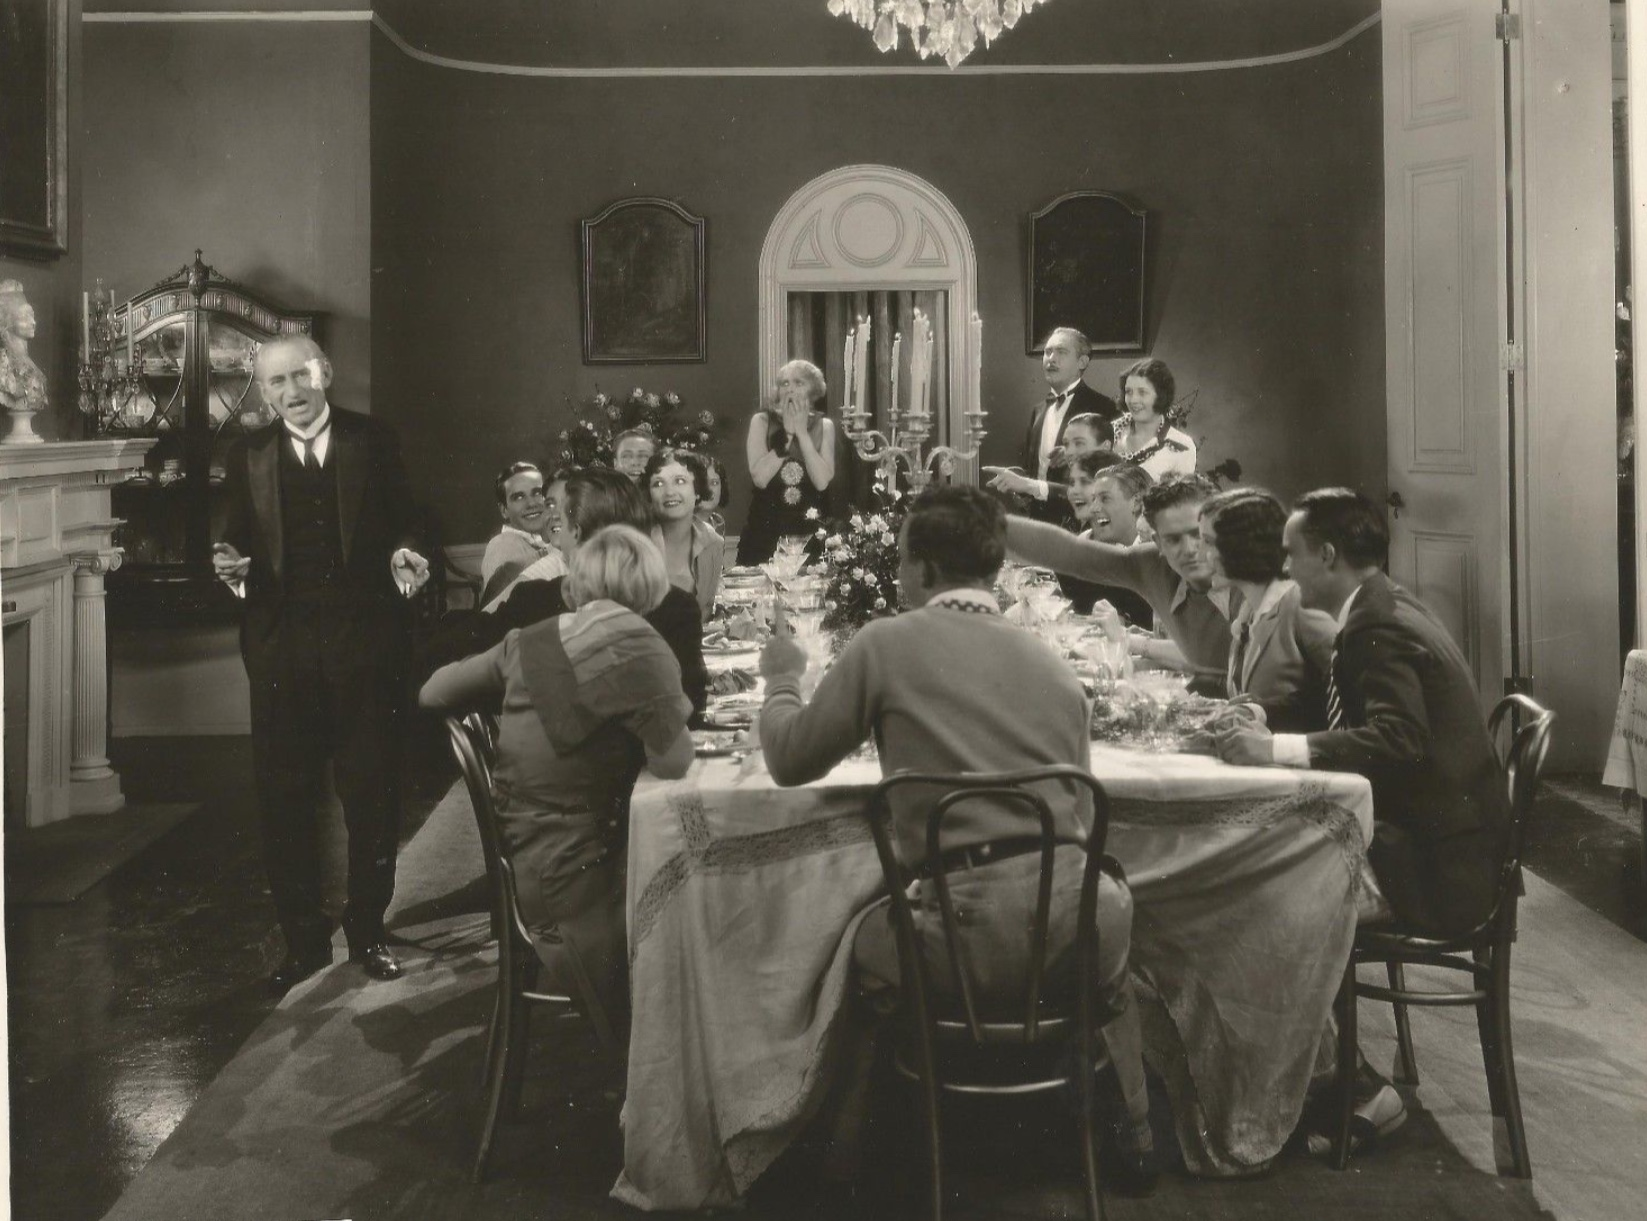 Robert Bolder, Lew Cody, Marceline Day, Ruth Holly, Patsy Kelly, Aileen Manning, Edward J. Nugent, Aileen Pringle, and Kathlyn Williams in A Single Man (1929)